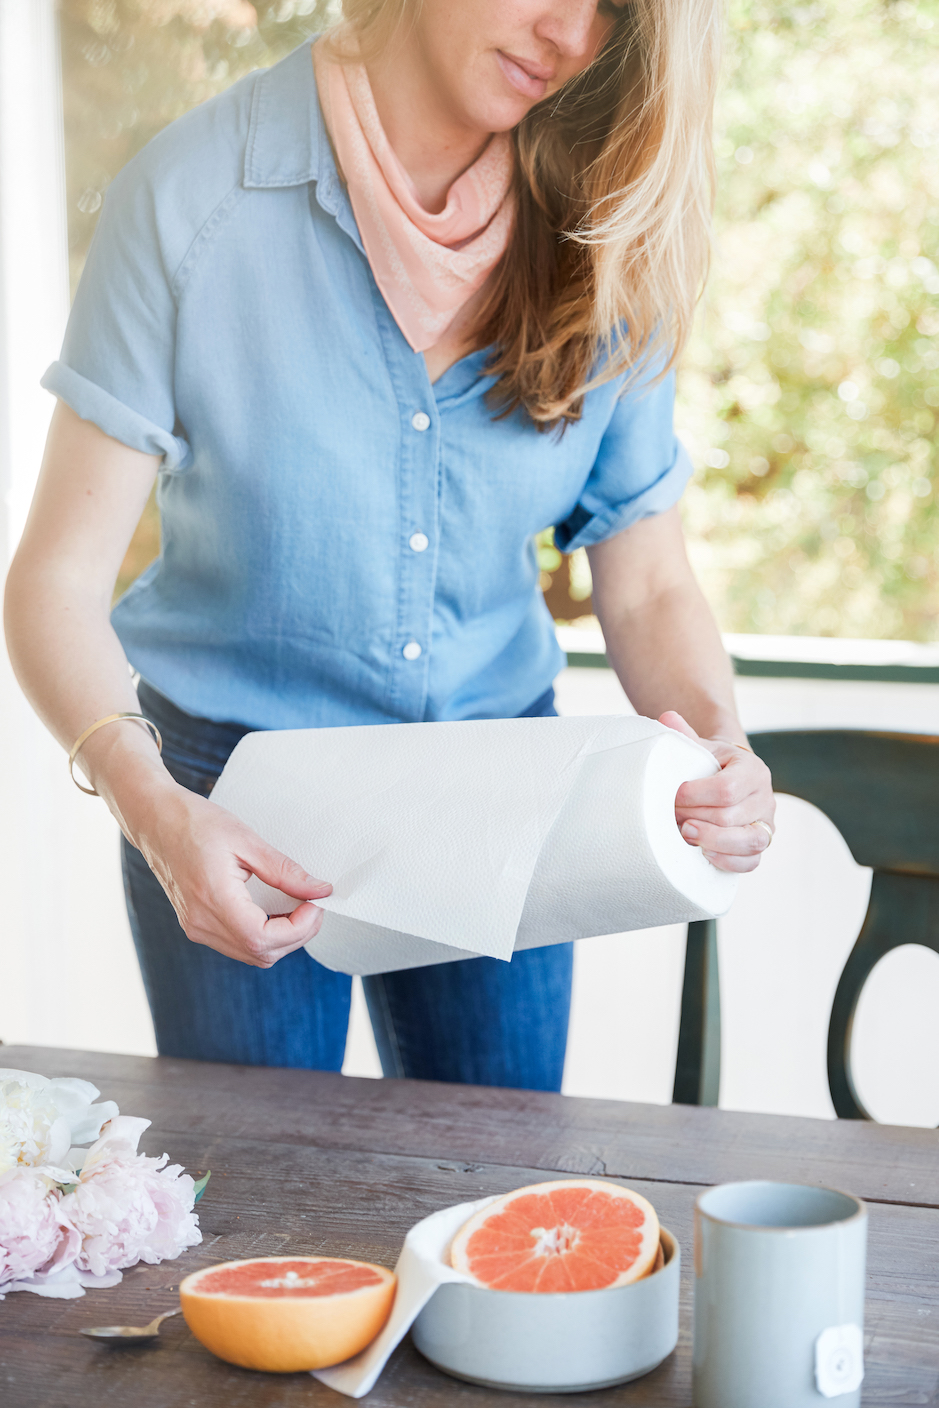 woman using roll of paper towels near cut grapefruit